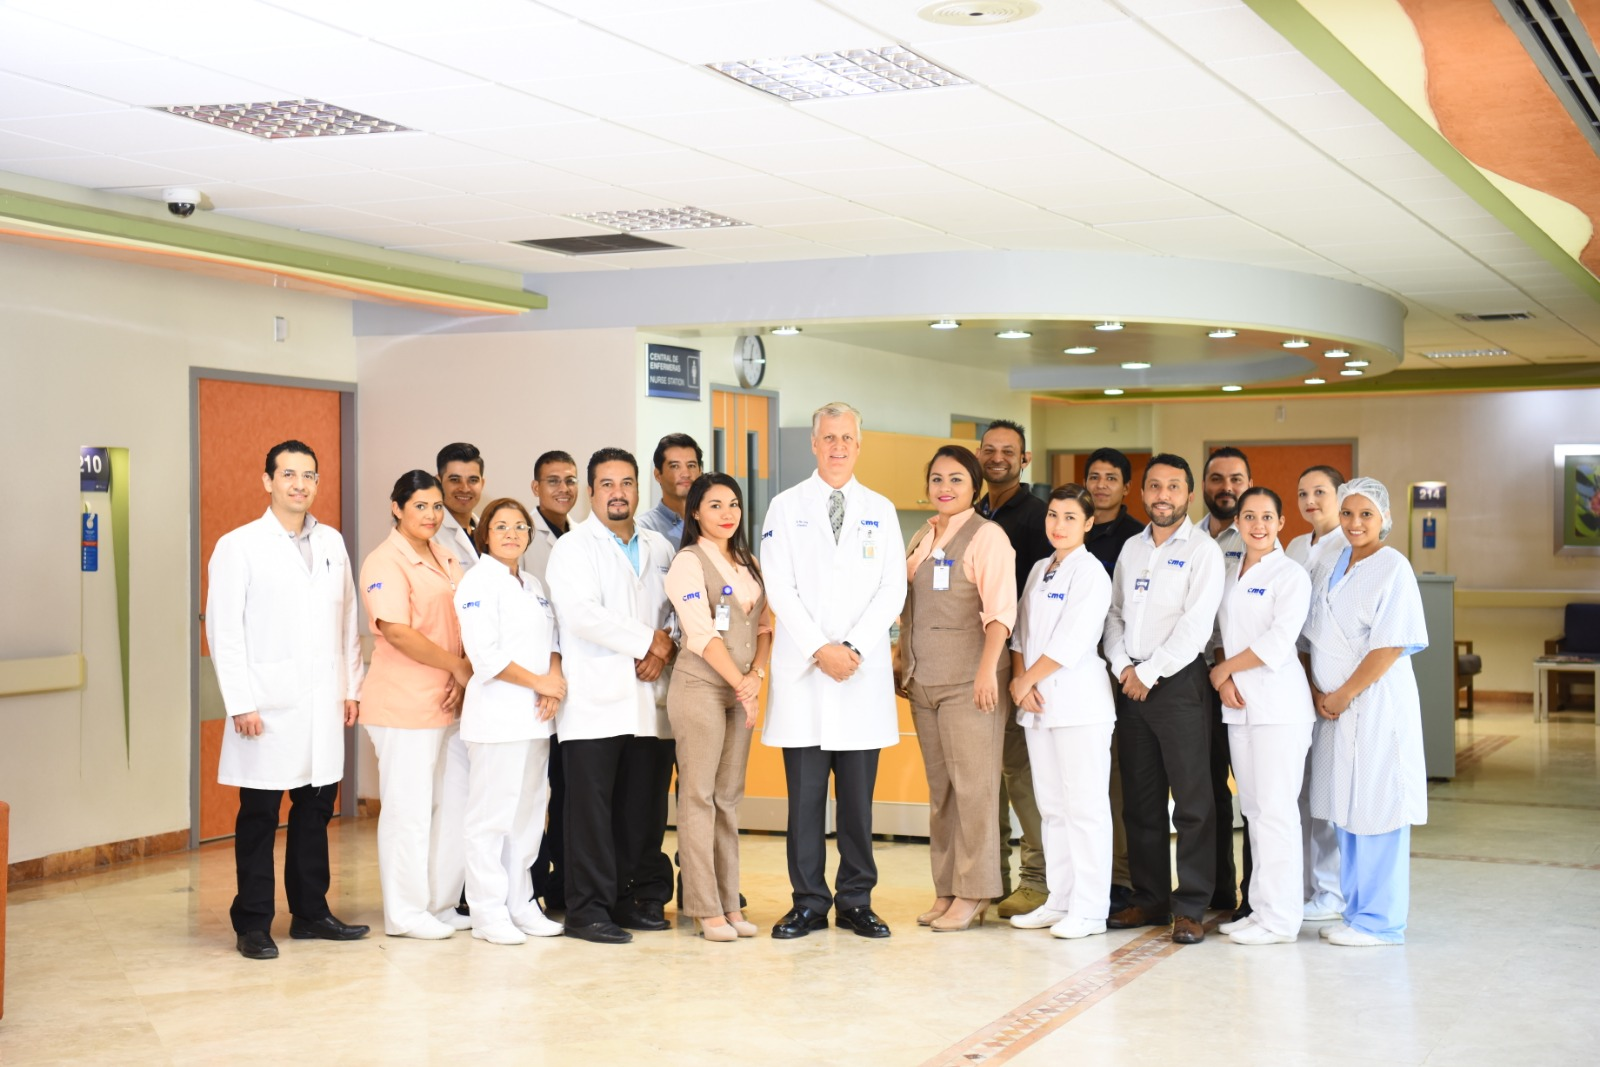 dr max and staff